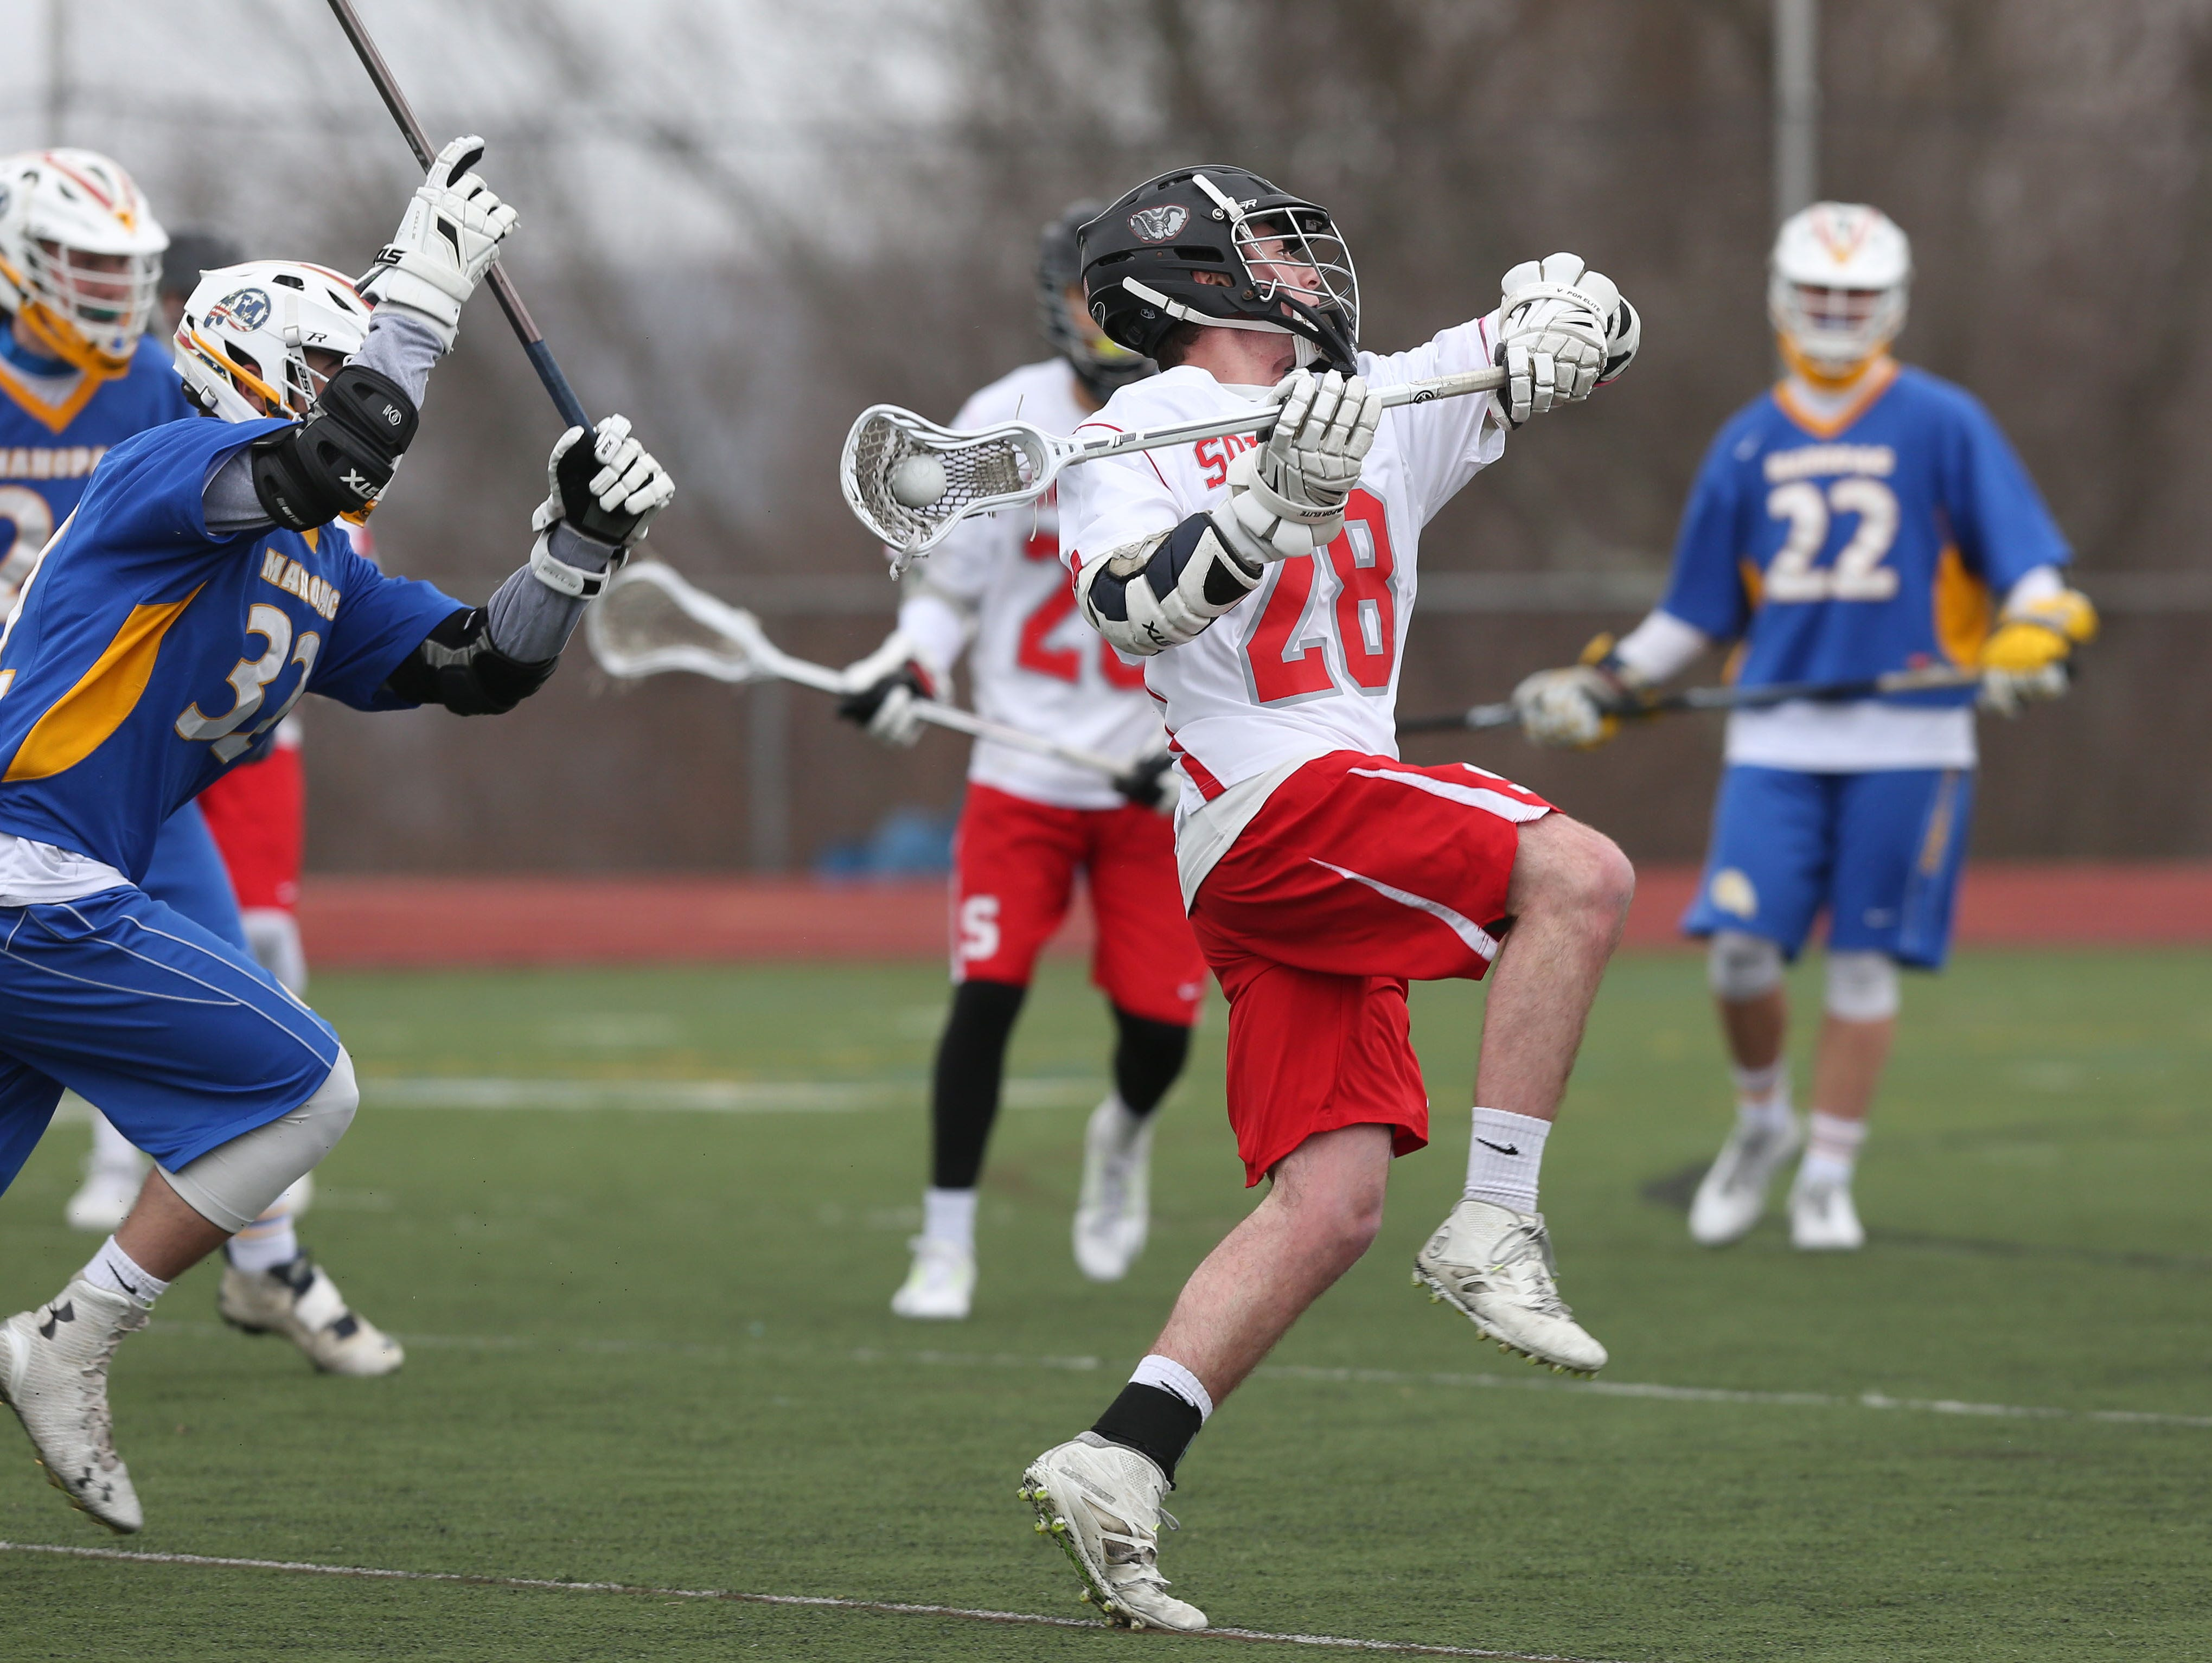 Somers' Andrew Lowman (28) fires a shot on goal against Mahopac during a boys lacrosse game at Somers High School April 9, 2016. Somers won the game 8-7.